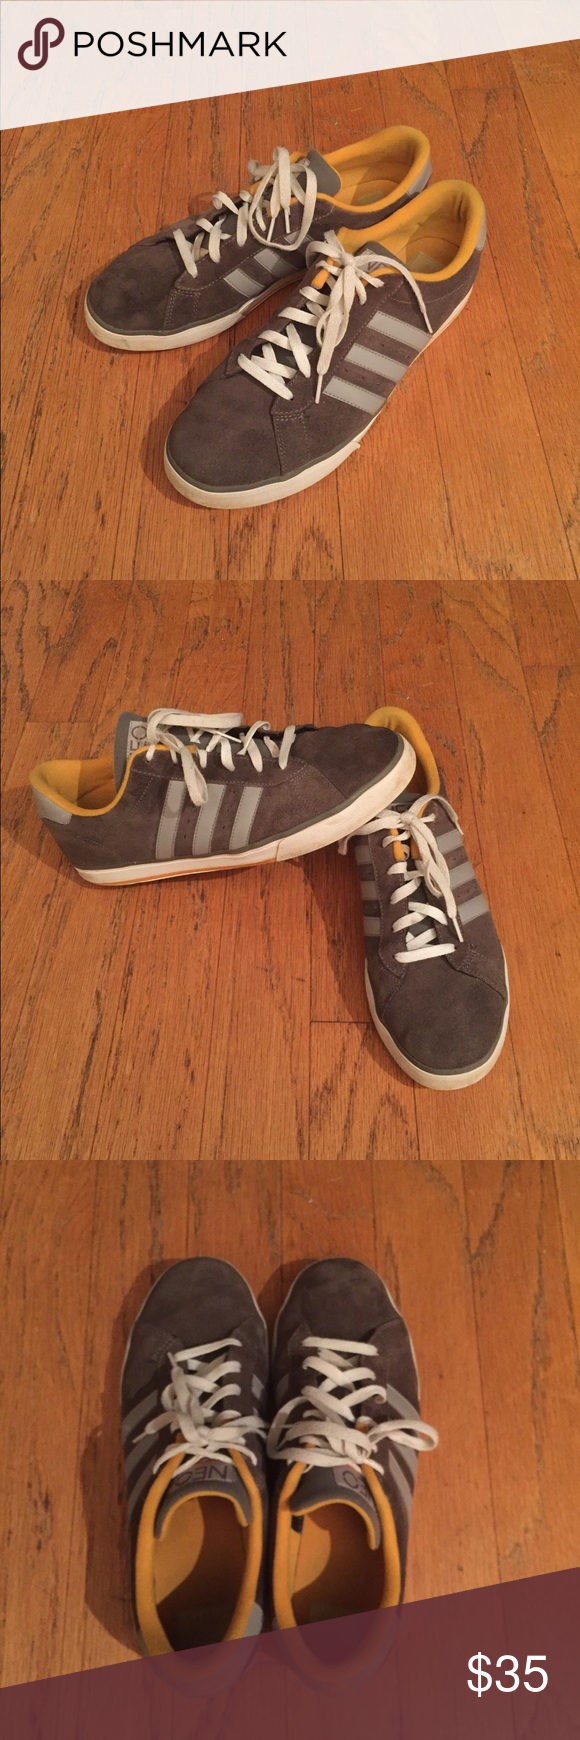 Adidas Neo Label Gray Suede Skateboarding Shoes Adidas Neo